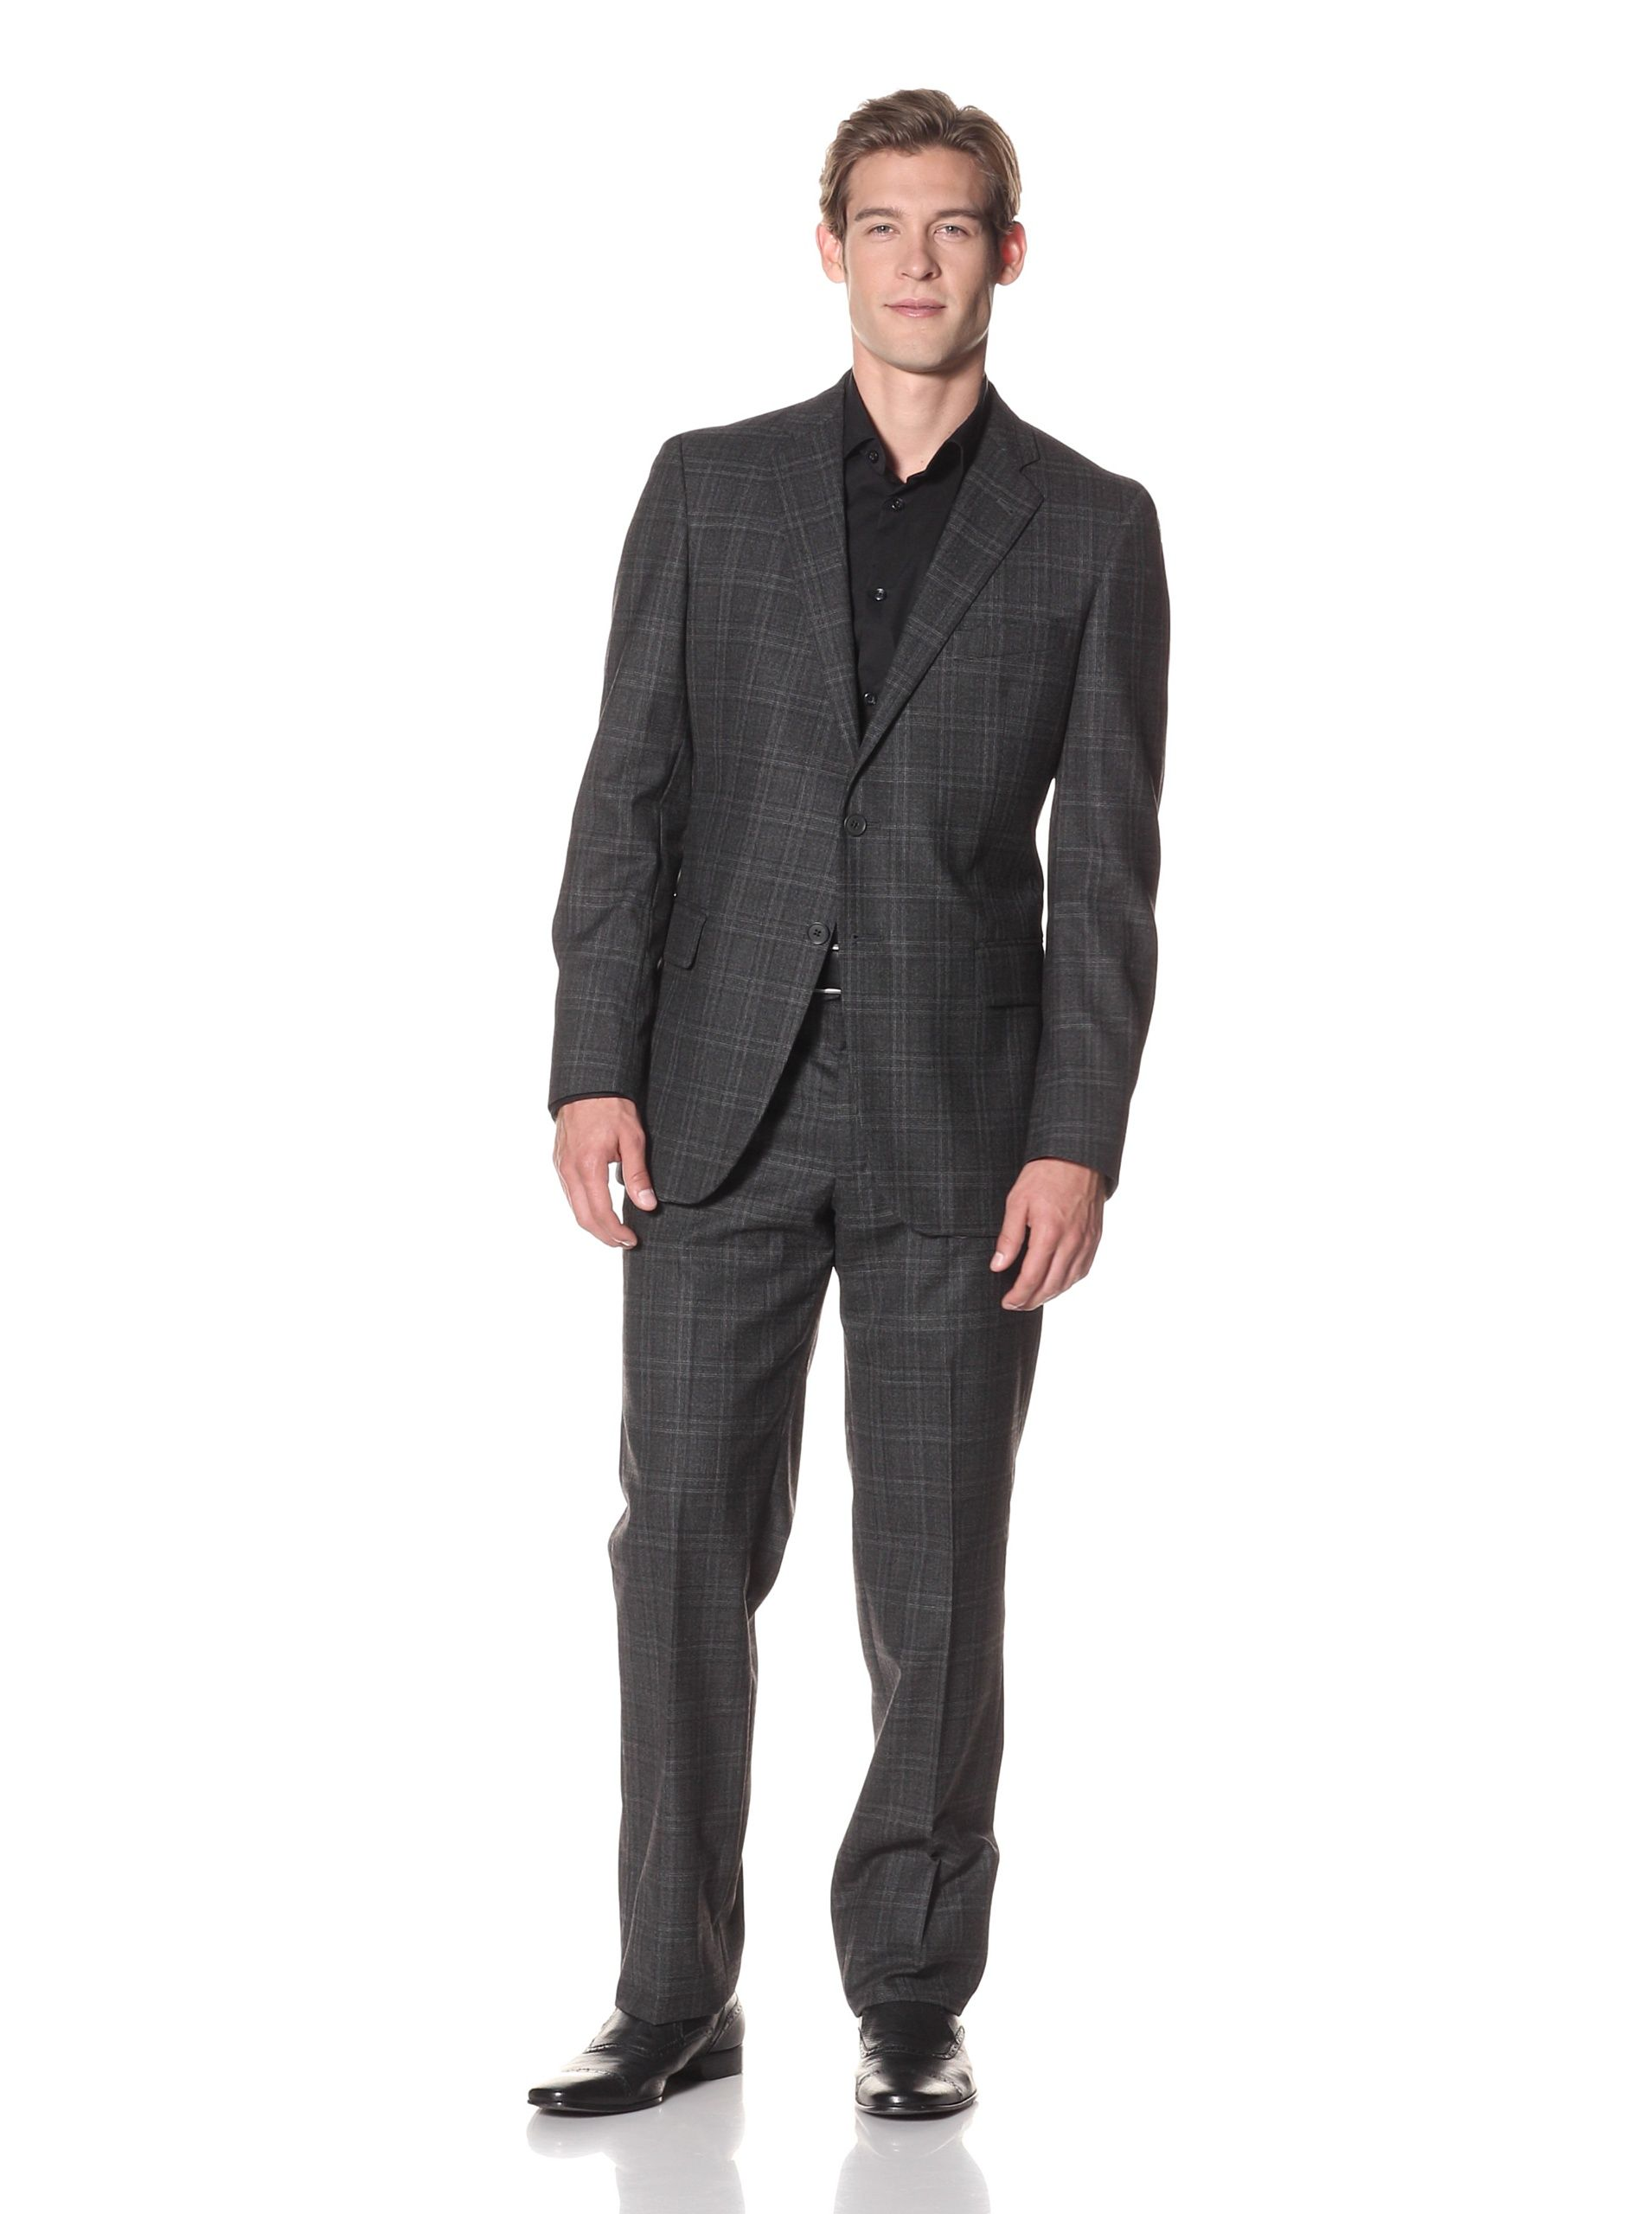 Joseph Abboud Men Mens outfits, Mens clothing styles